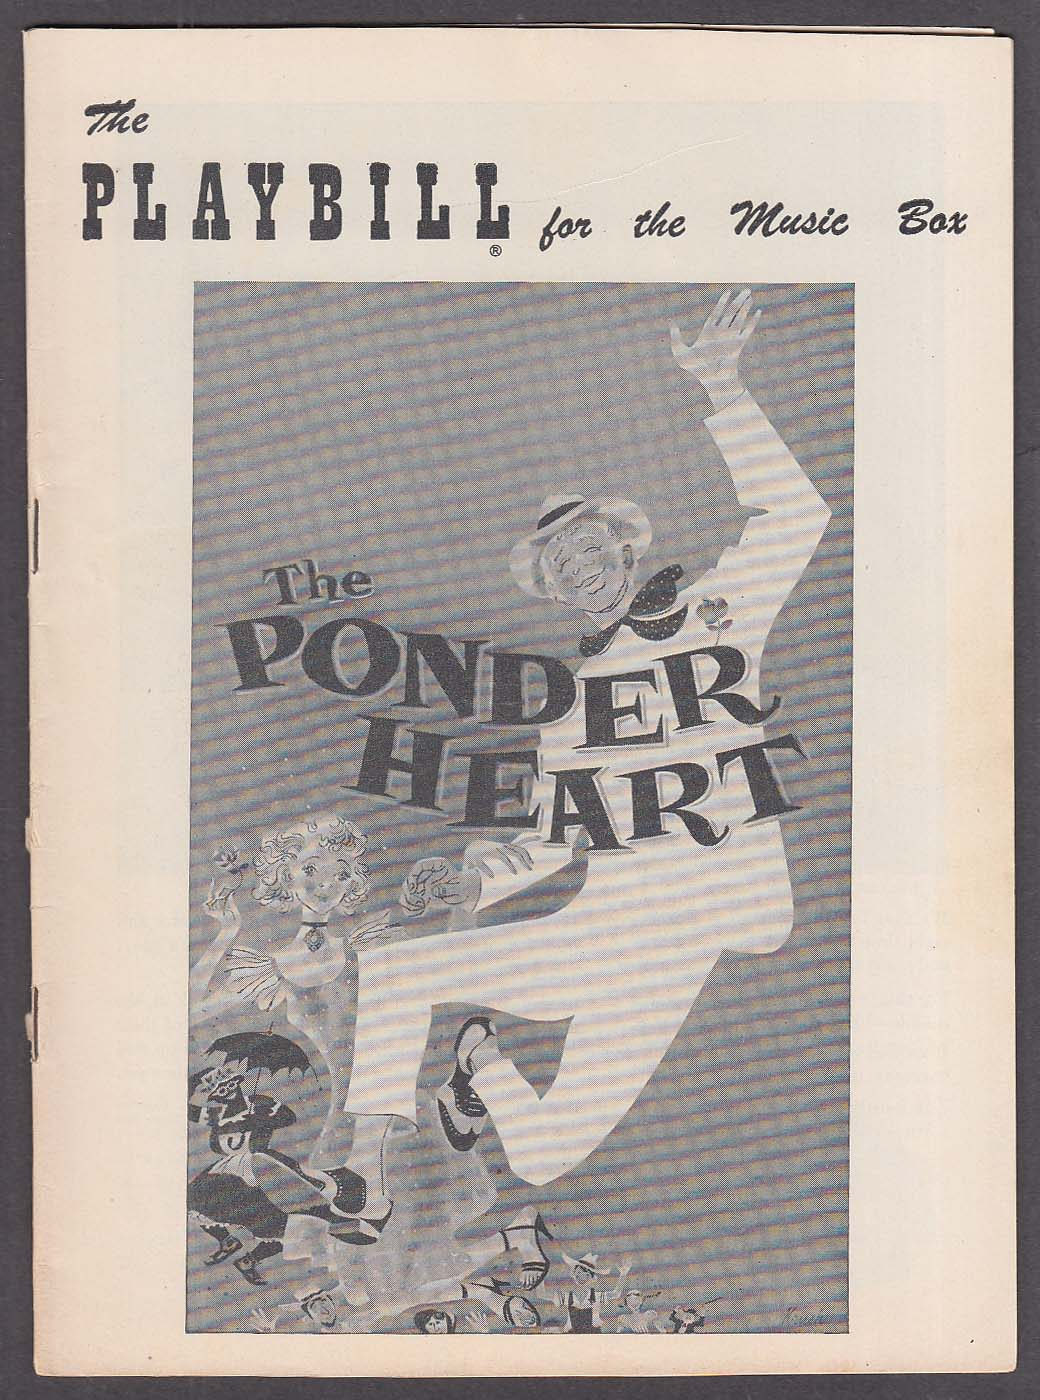 David Wayne Una Merkel The Ponder Heart at Music Box Playbill 1956